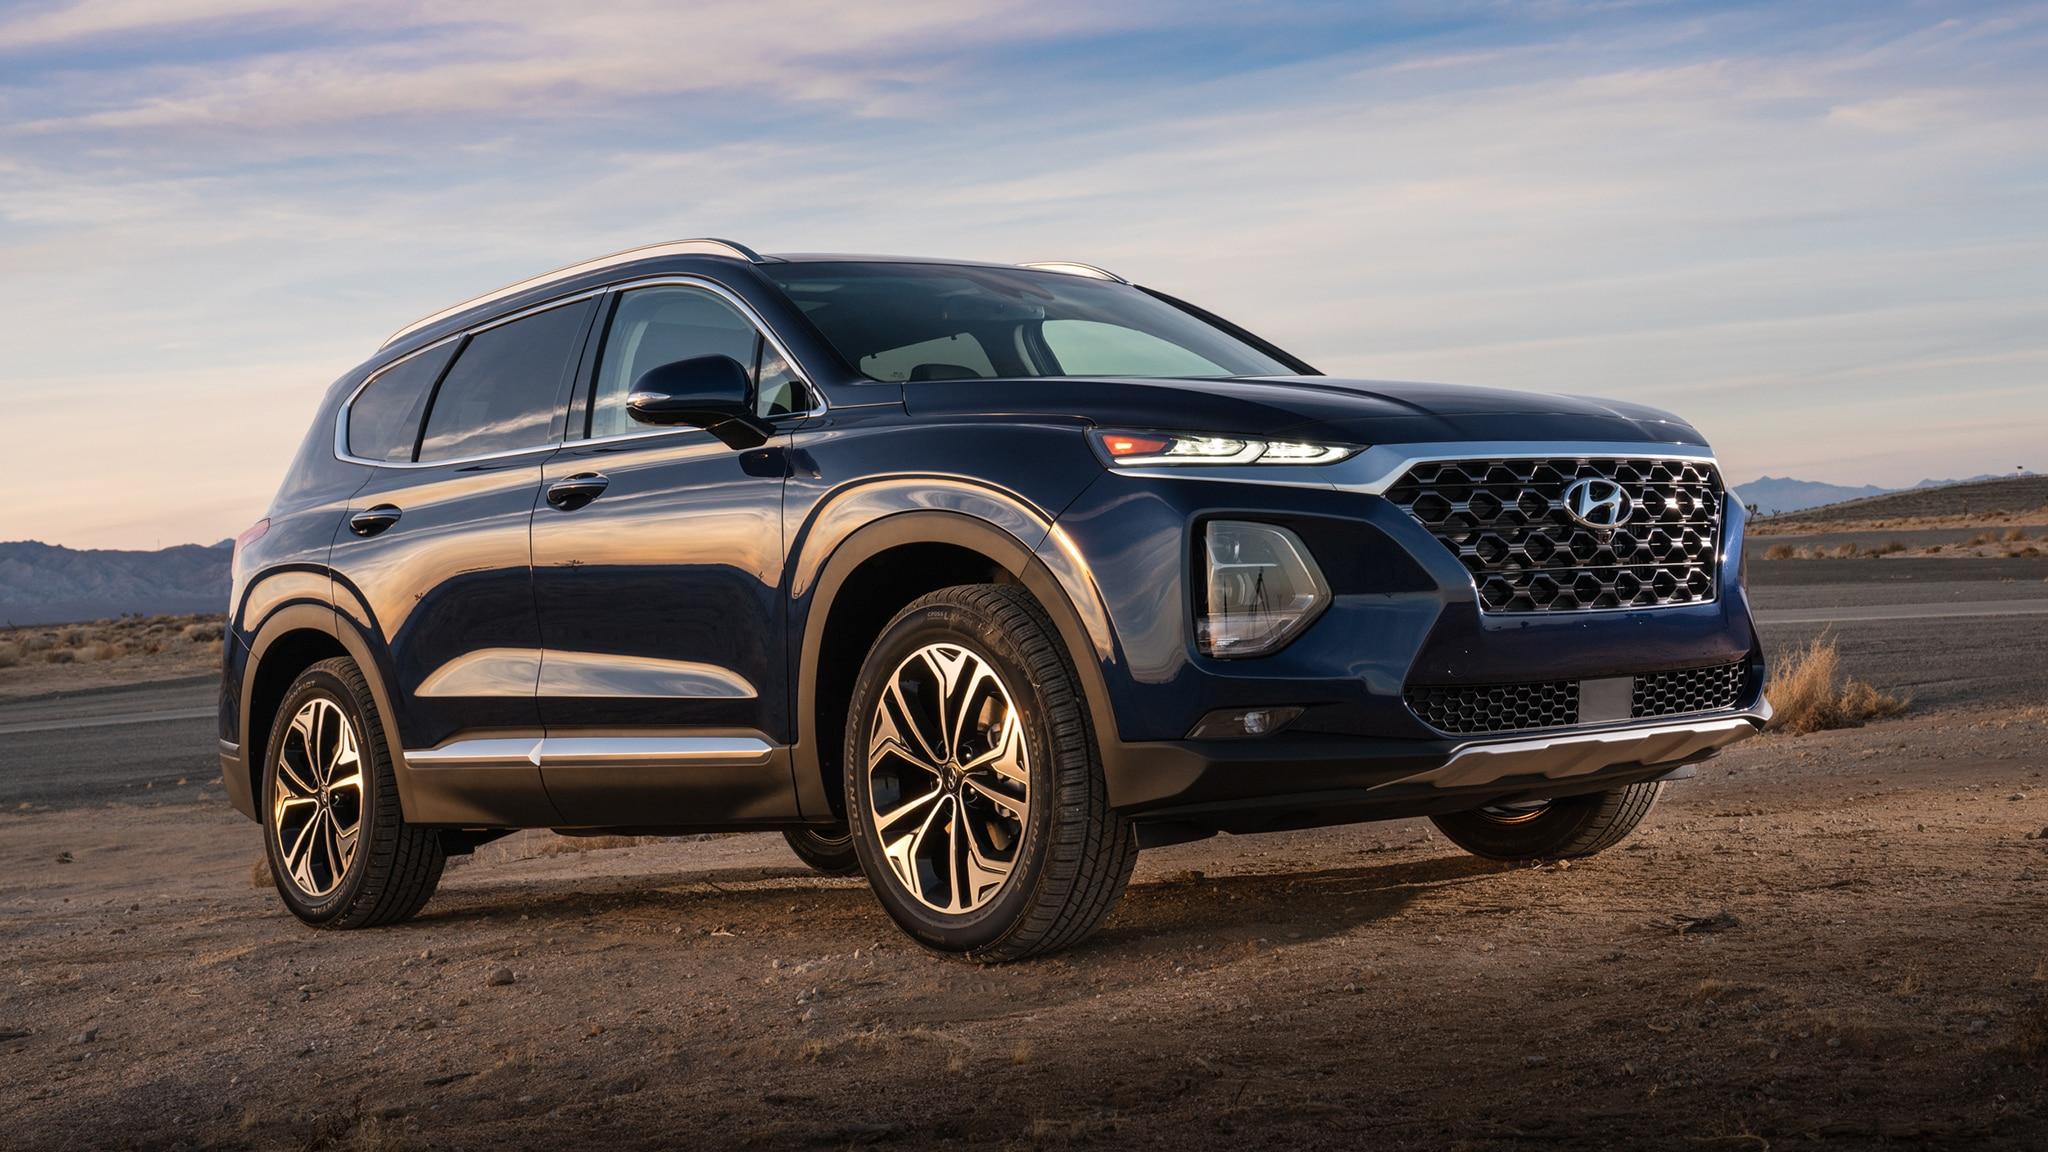 2019 Hyundai Santa Fe Review: It Delivers on Its Promises ...